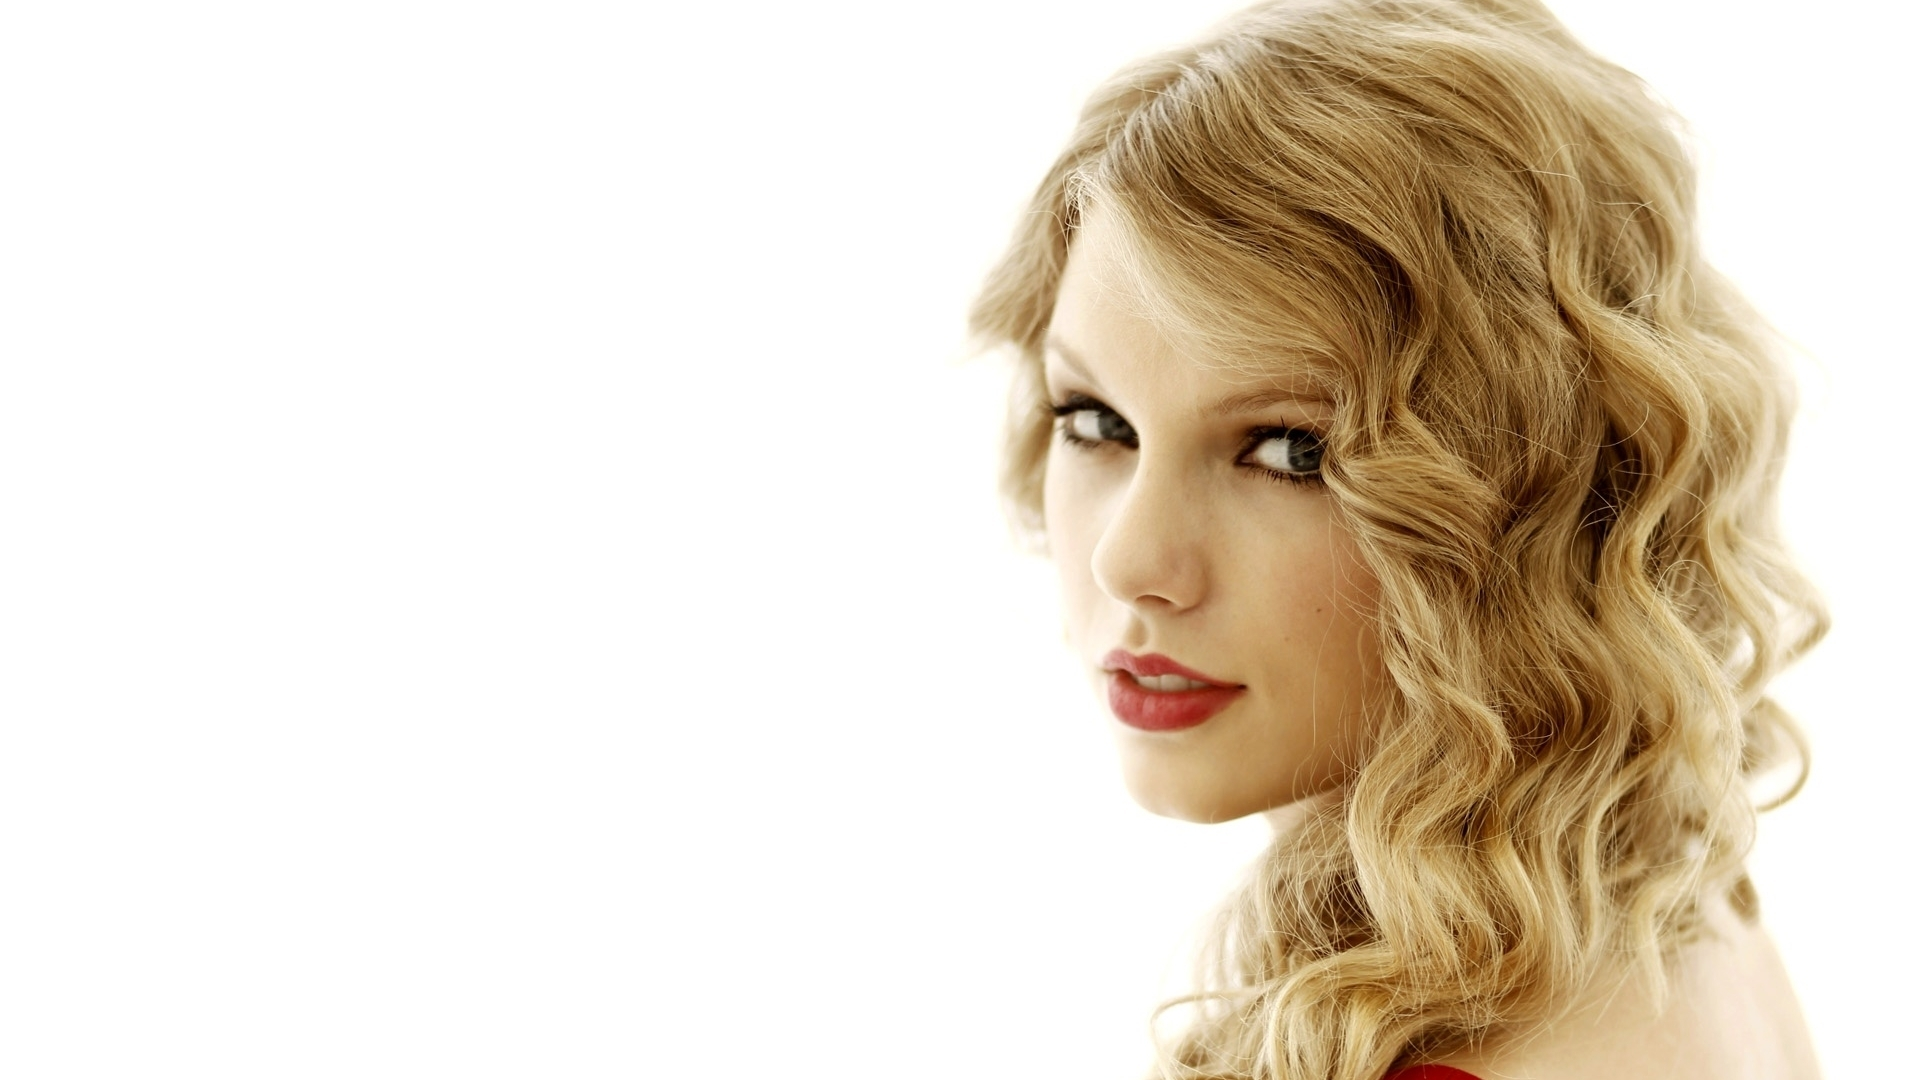 taylor swift   Taylor Swift Wallpaper 21470253 1920x1080